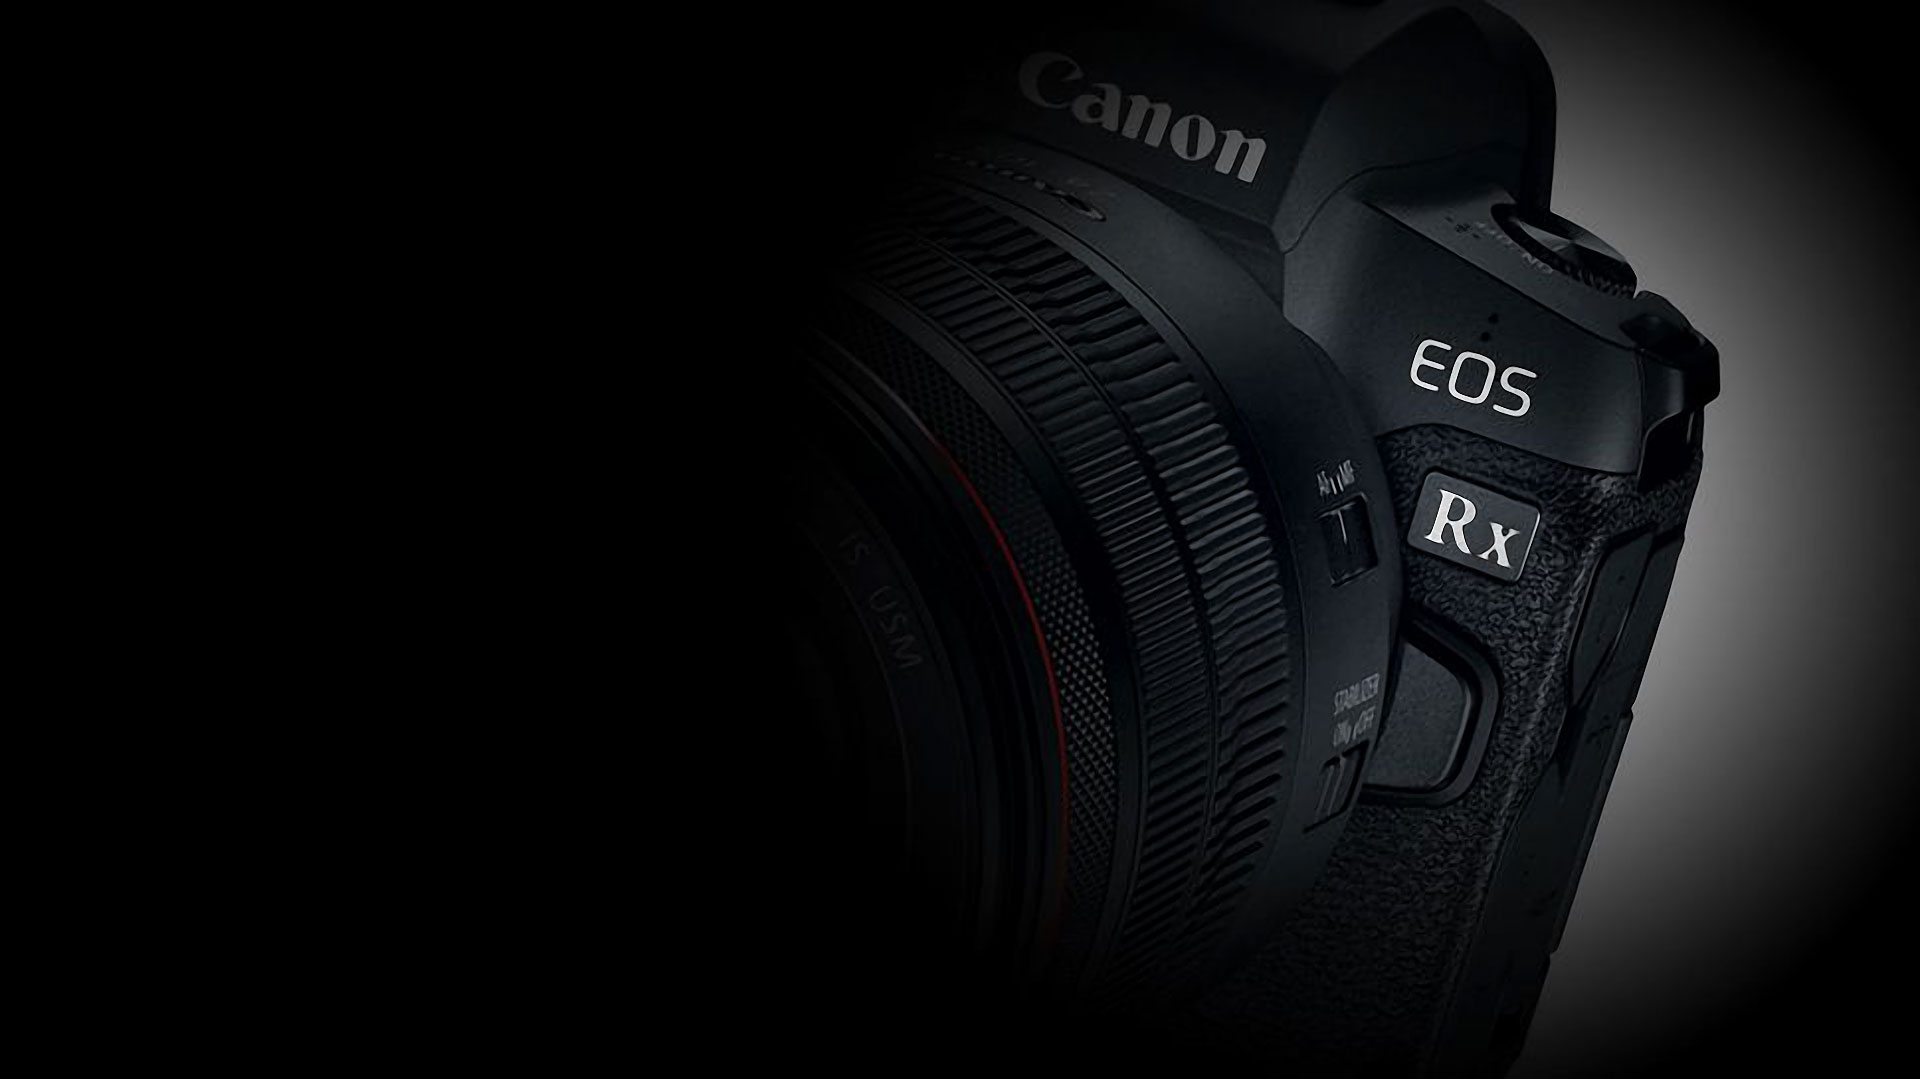 Canon EOS Rx rumours and specs